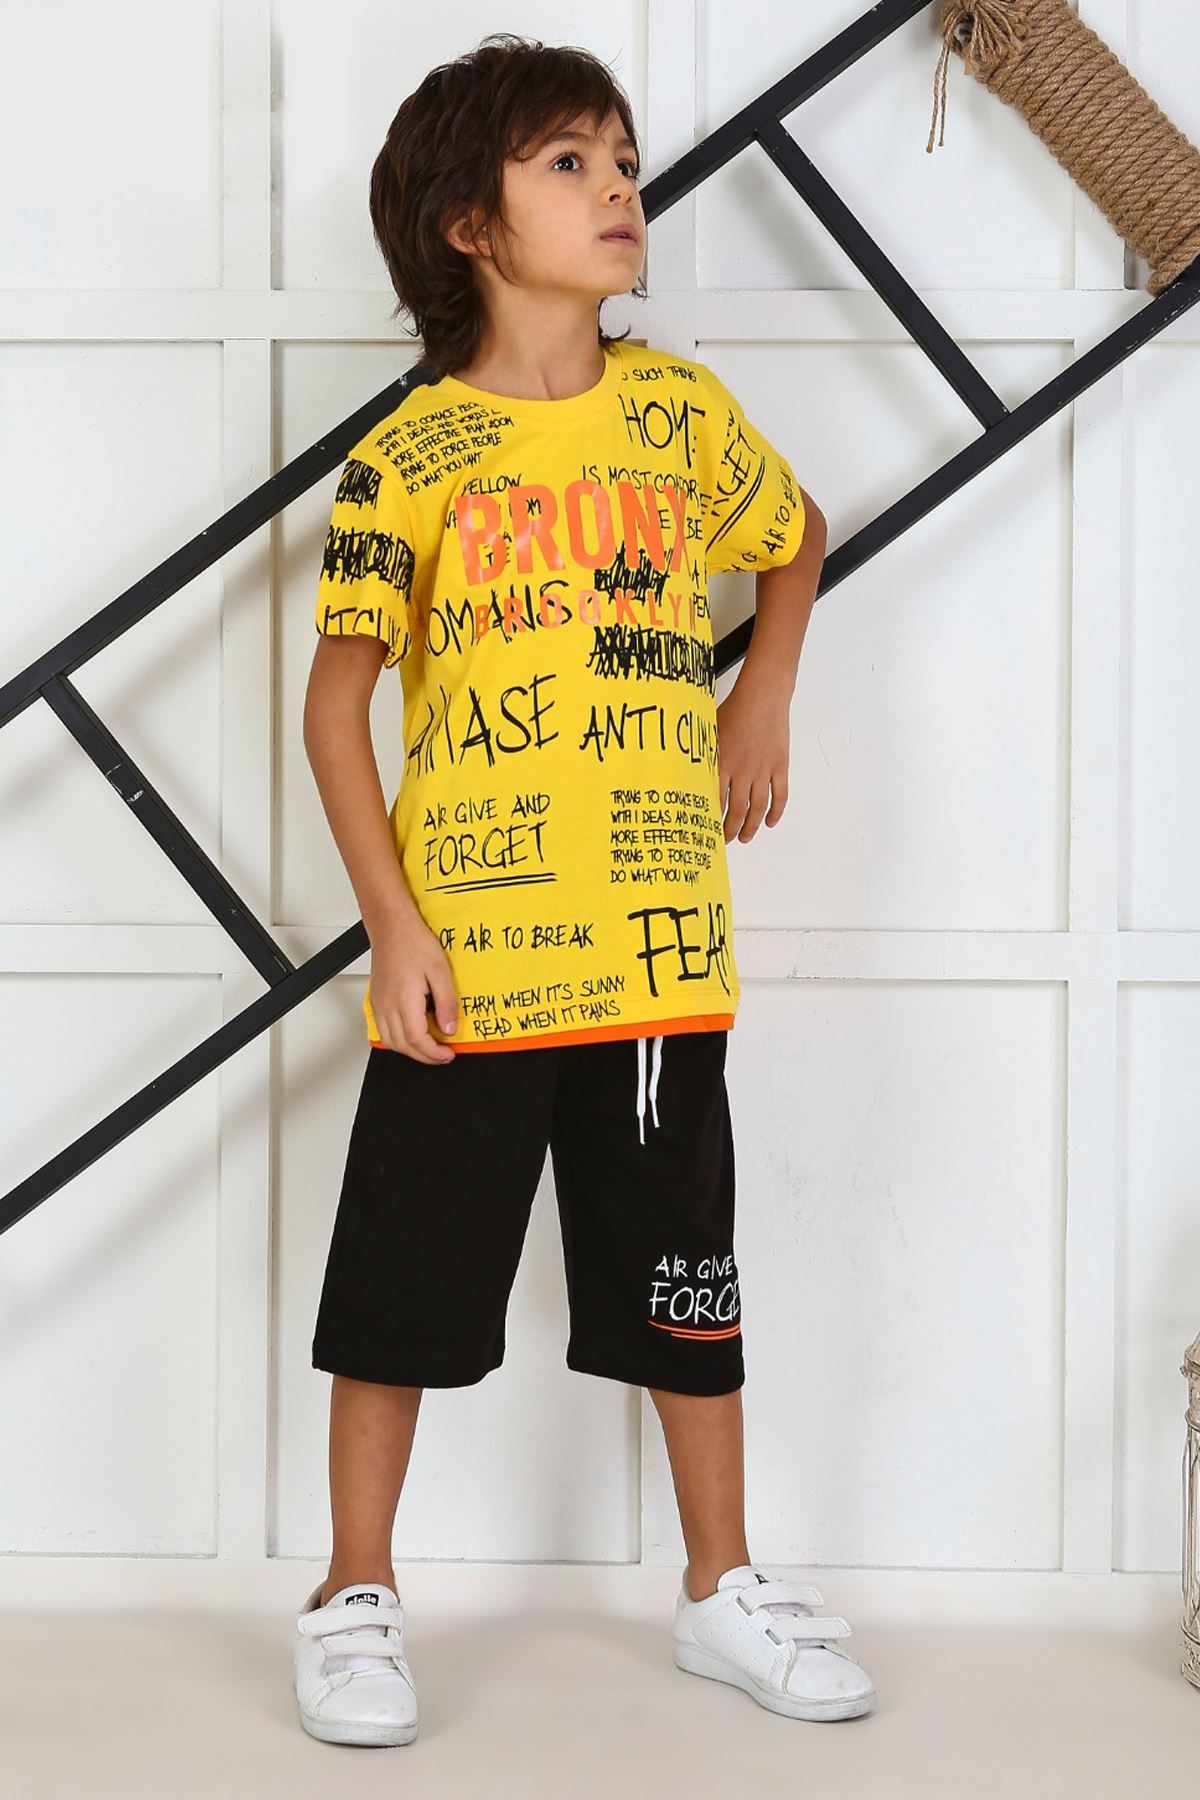 Yellow Child Boy Teenage Male Clothes Suit Summer Children T-Shirt Shorts 2 Piece Clothing Set Beach Boys Outfits sport Models